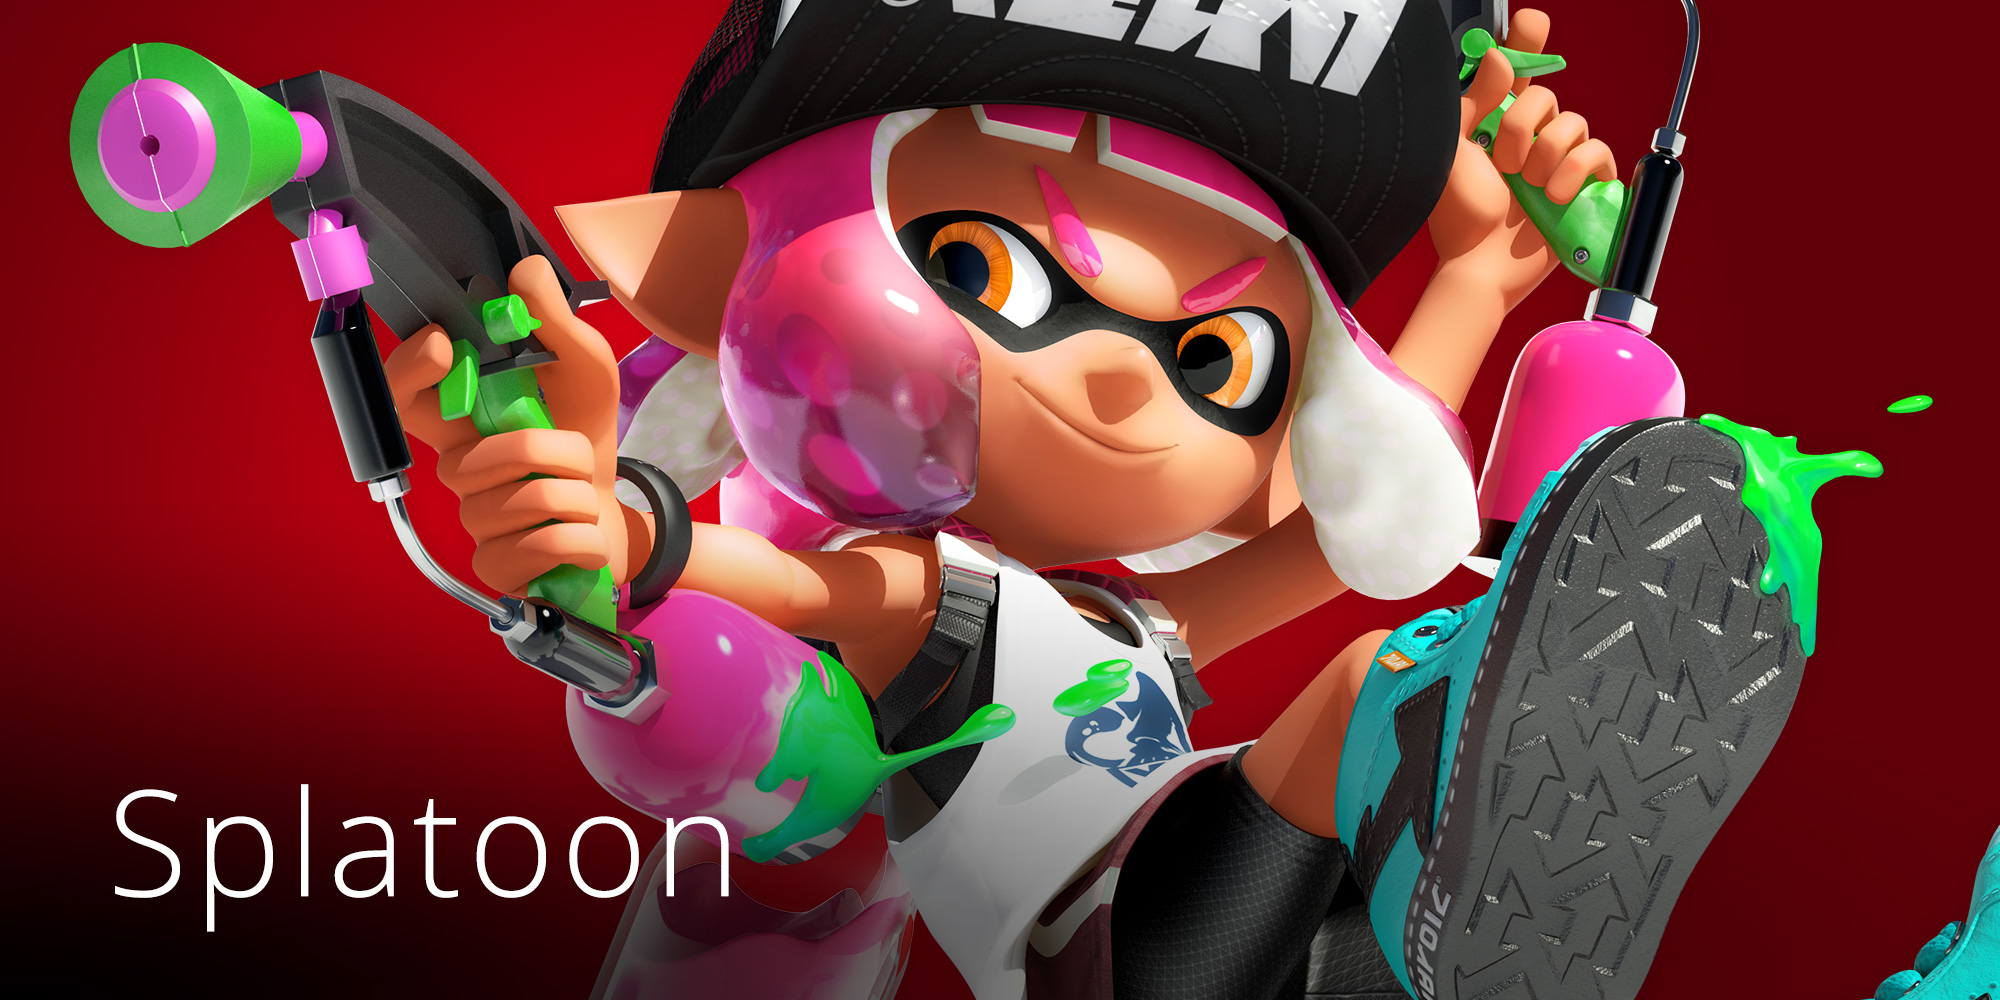 Splatoon products